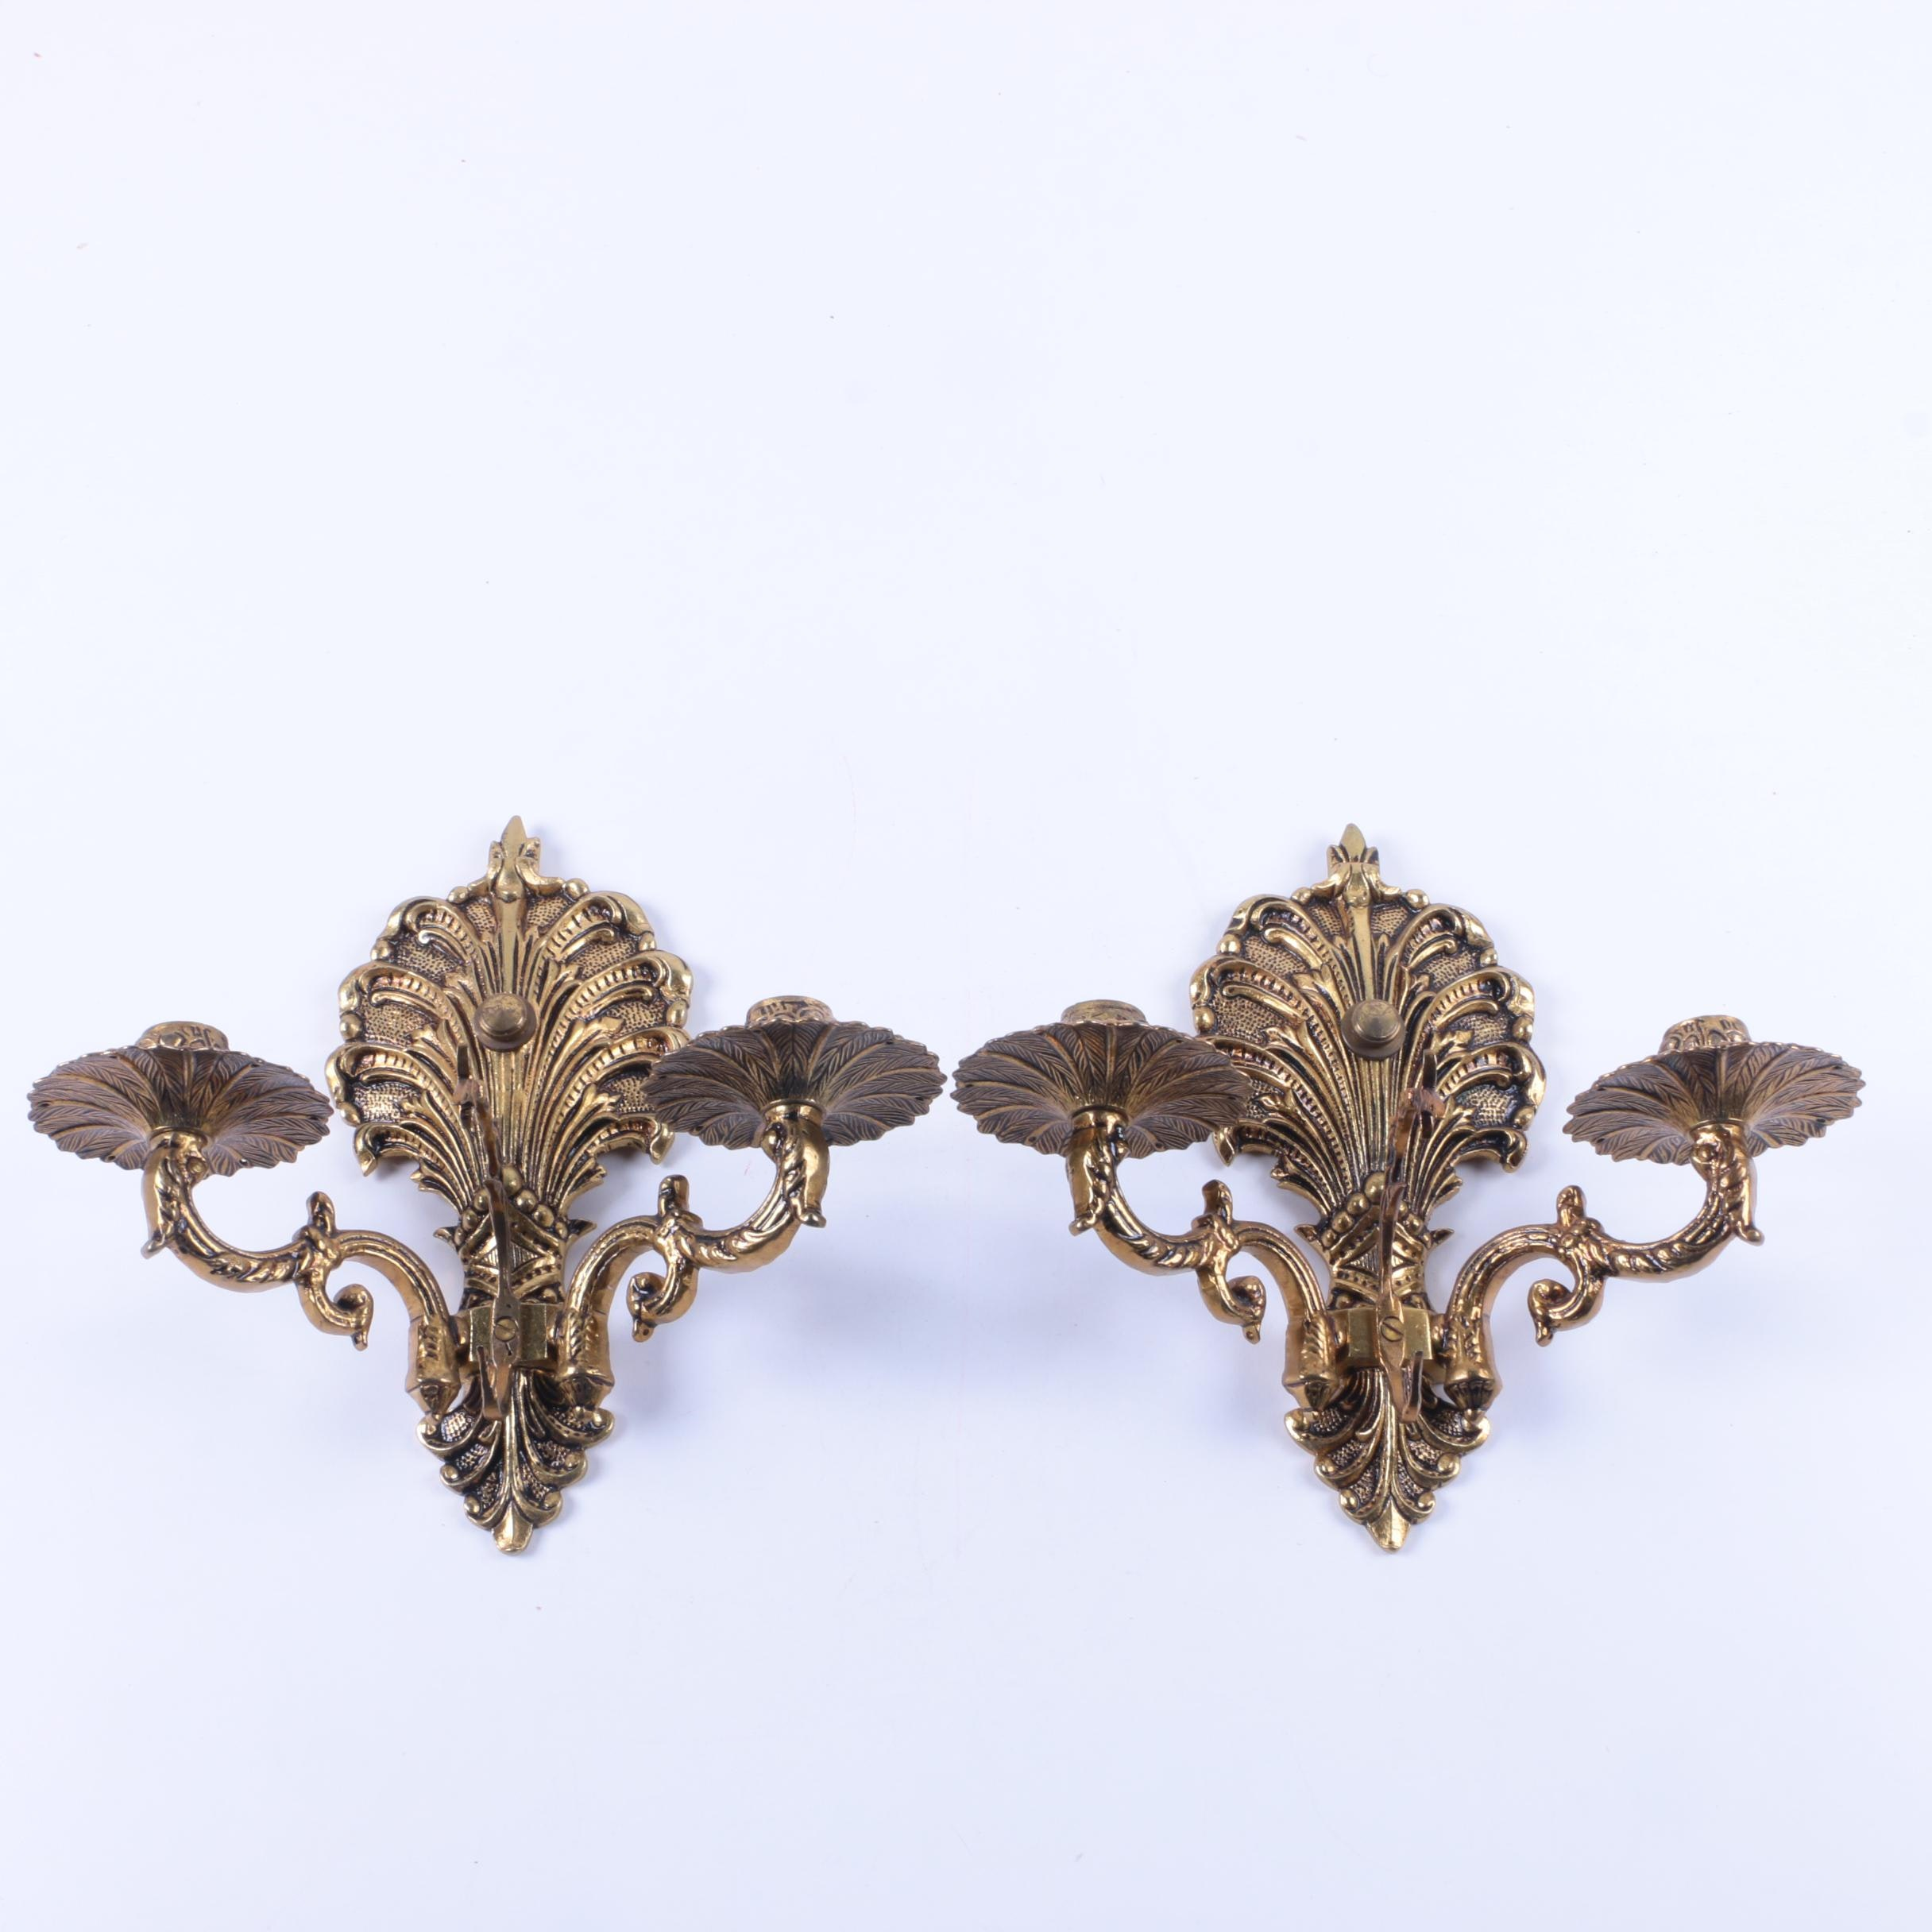 Pair of Brass Patina Candle Sconces